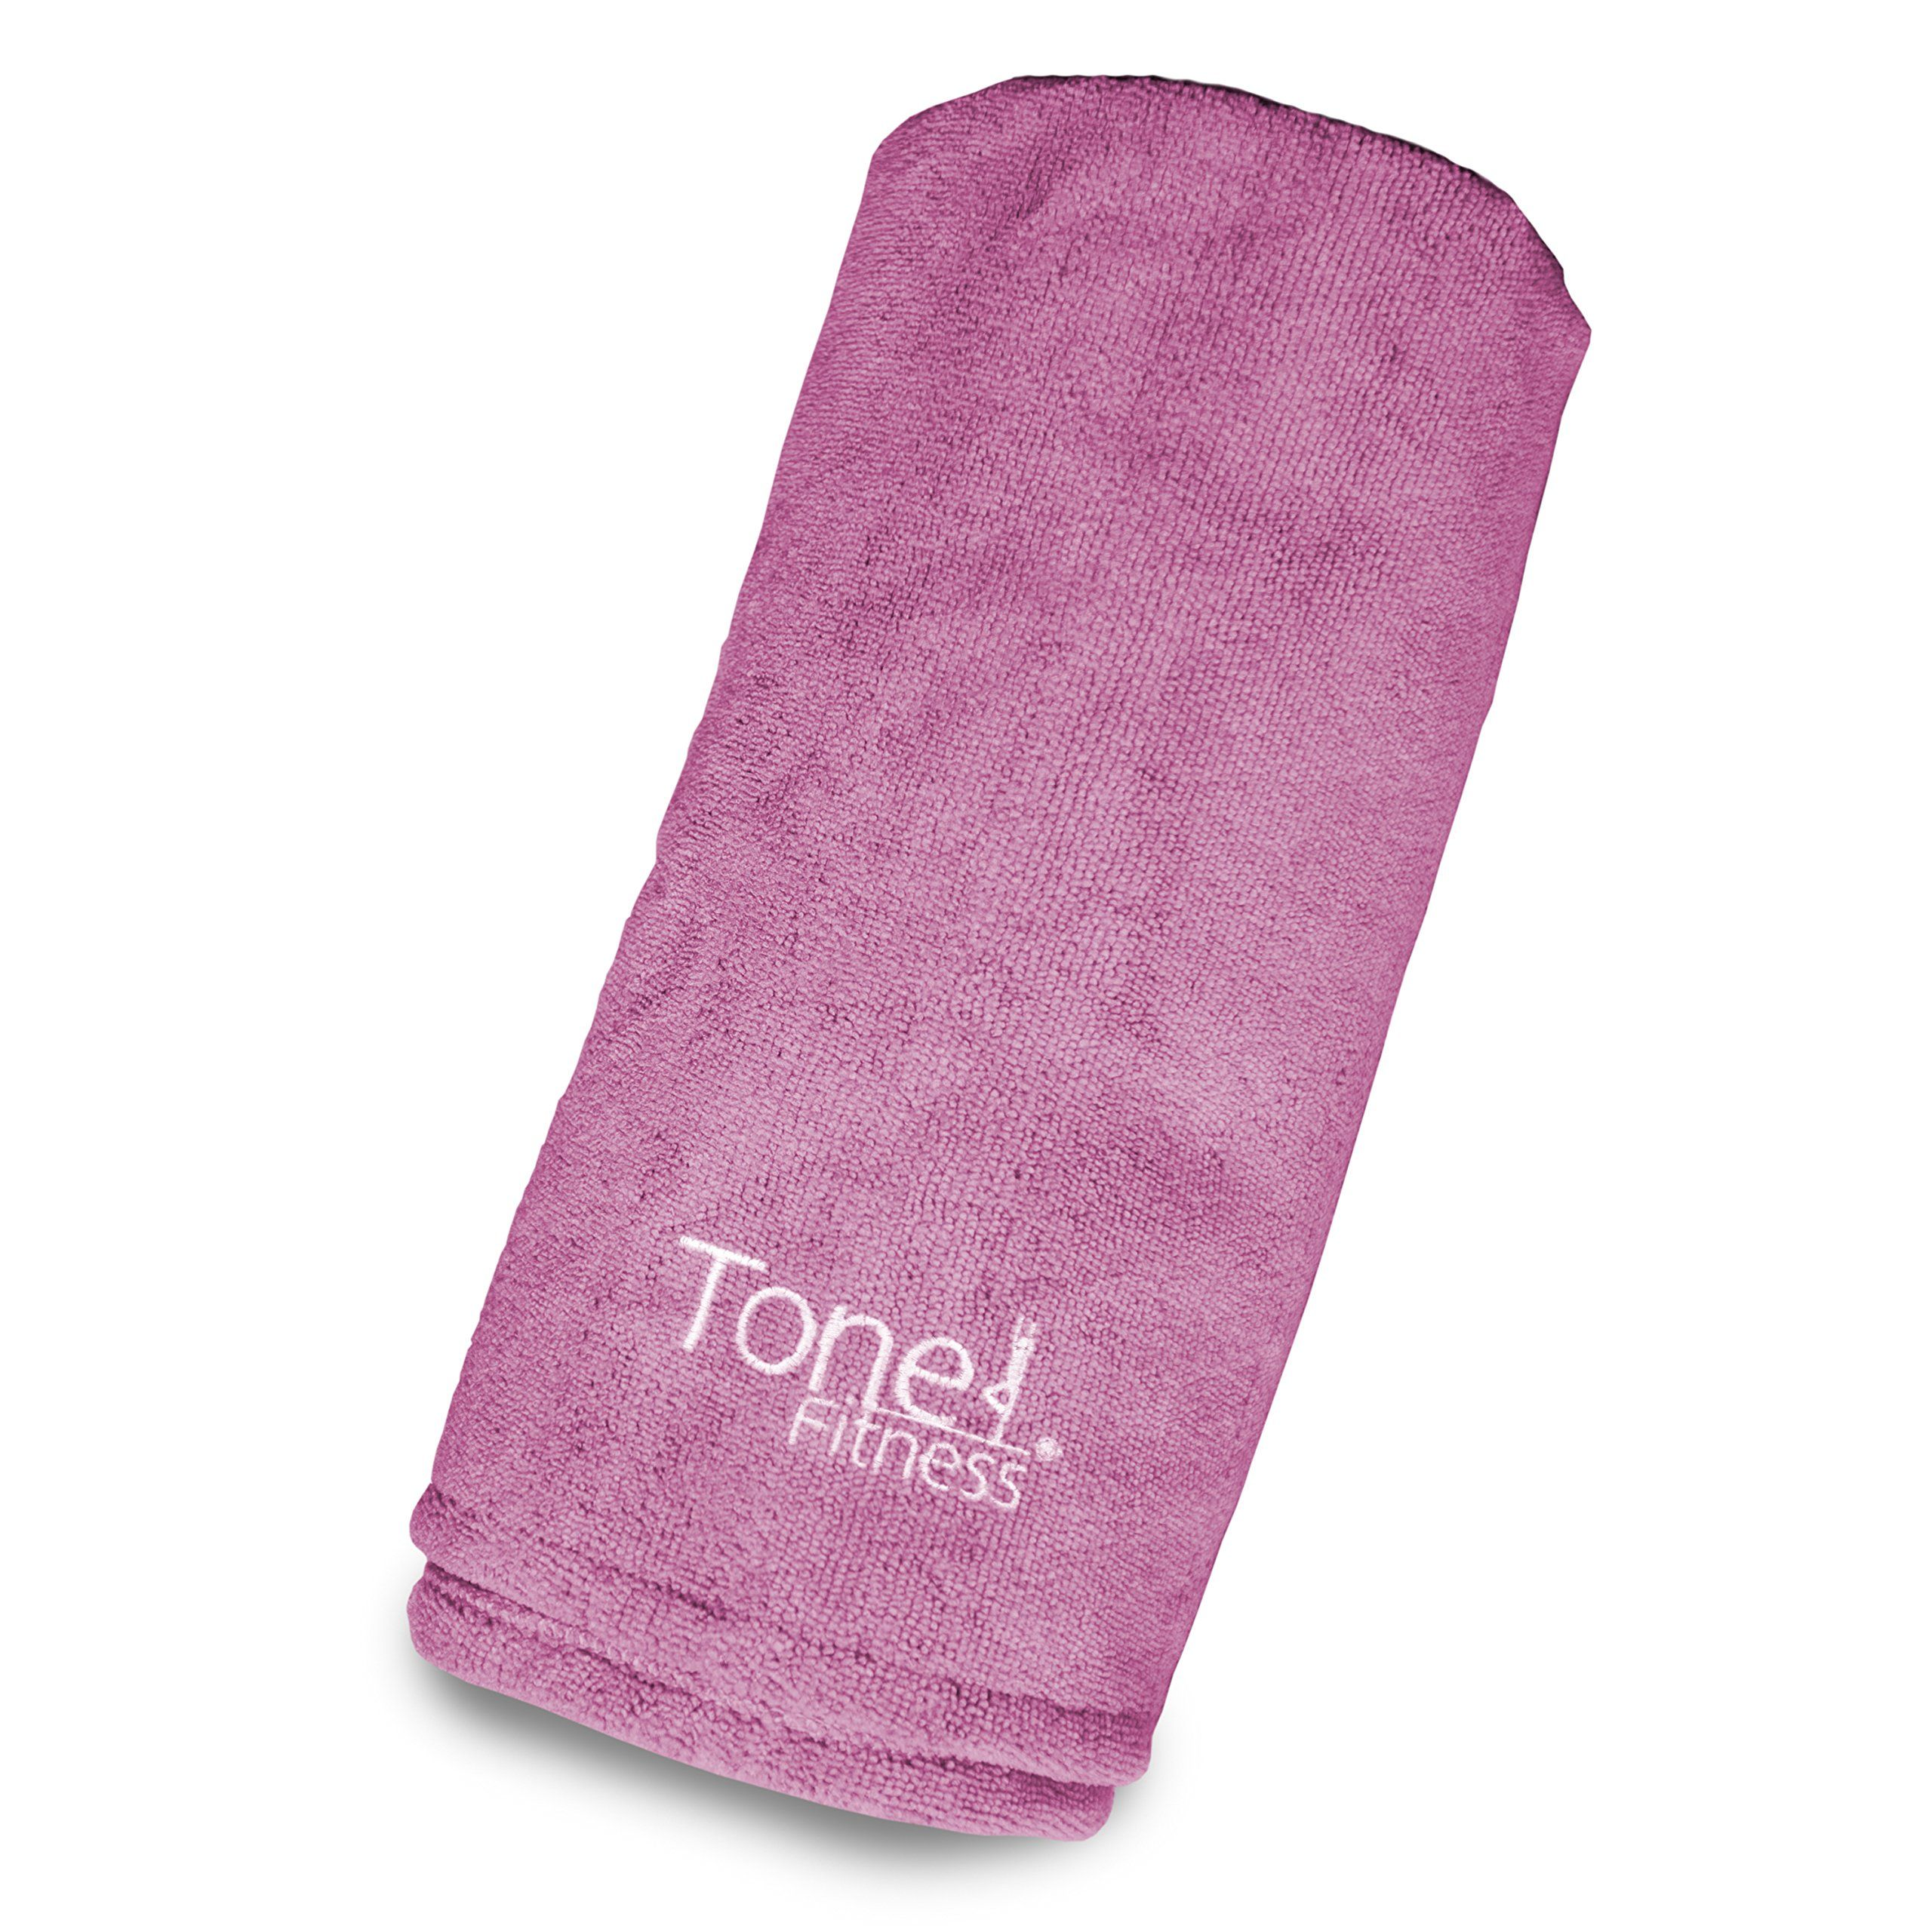 yoga mat angled collective luxe bodhi eco towels products mats bhakti